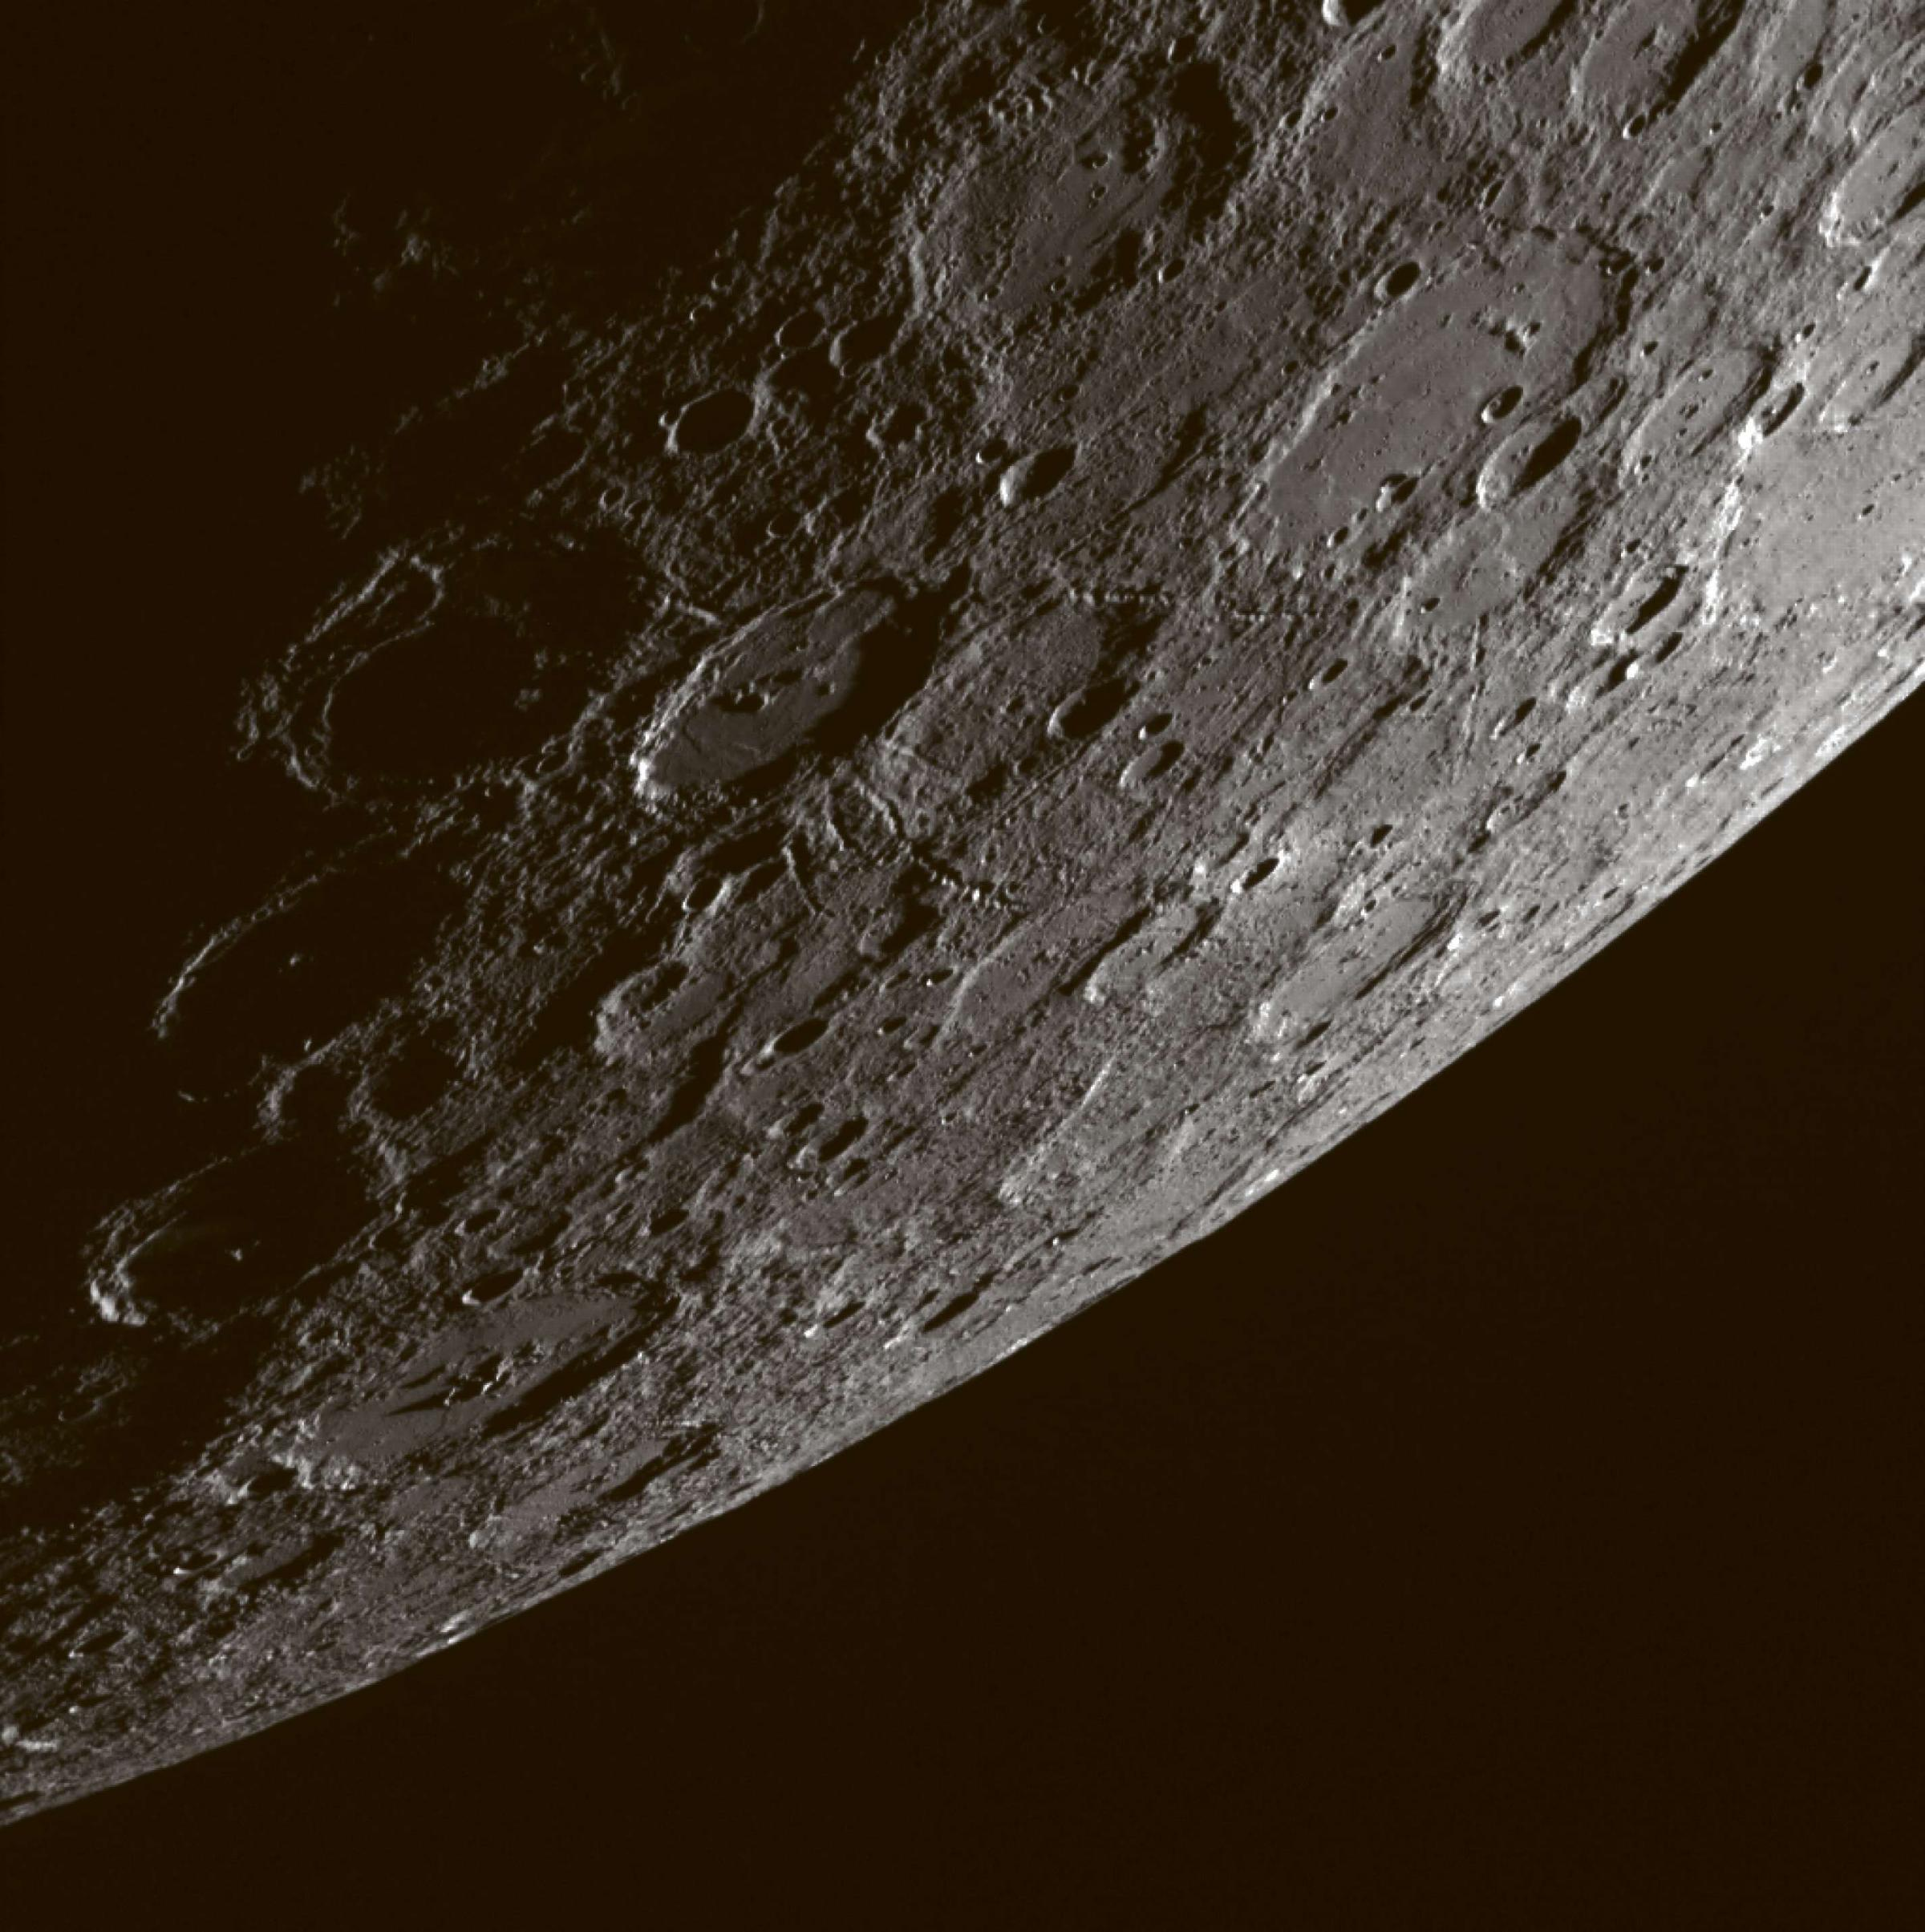 Mercury 'jewel' named after Battle of Catterick poet